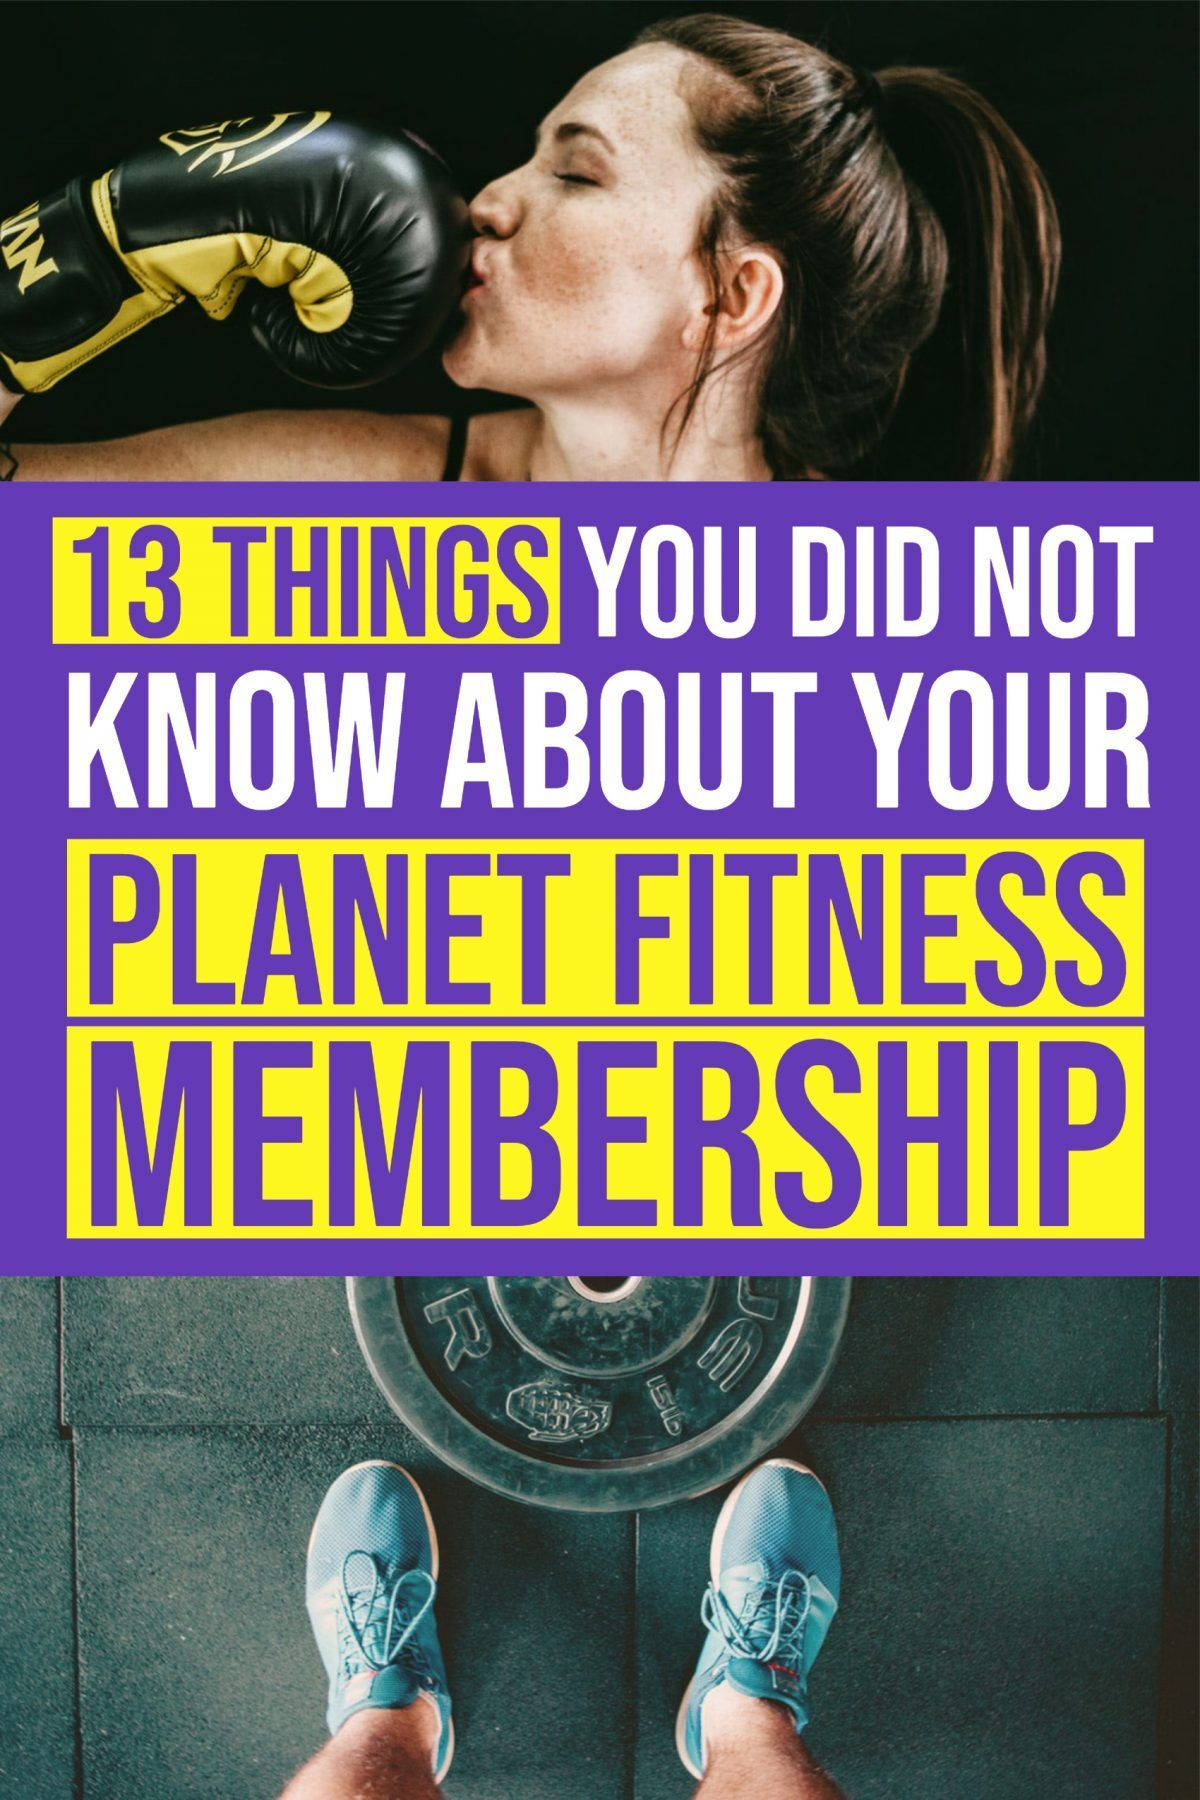 13 Ways To Get The Most Out Of Your Planet Fitness Membership that you did not know about.   #fitnes...